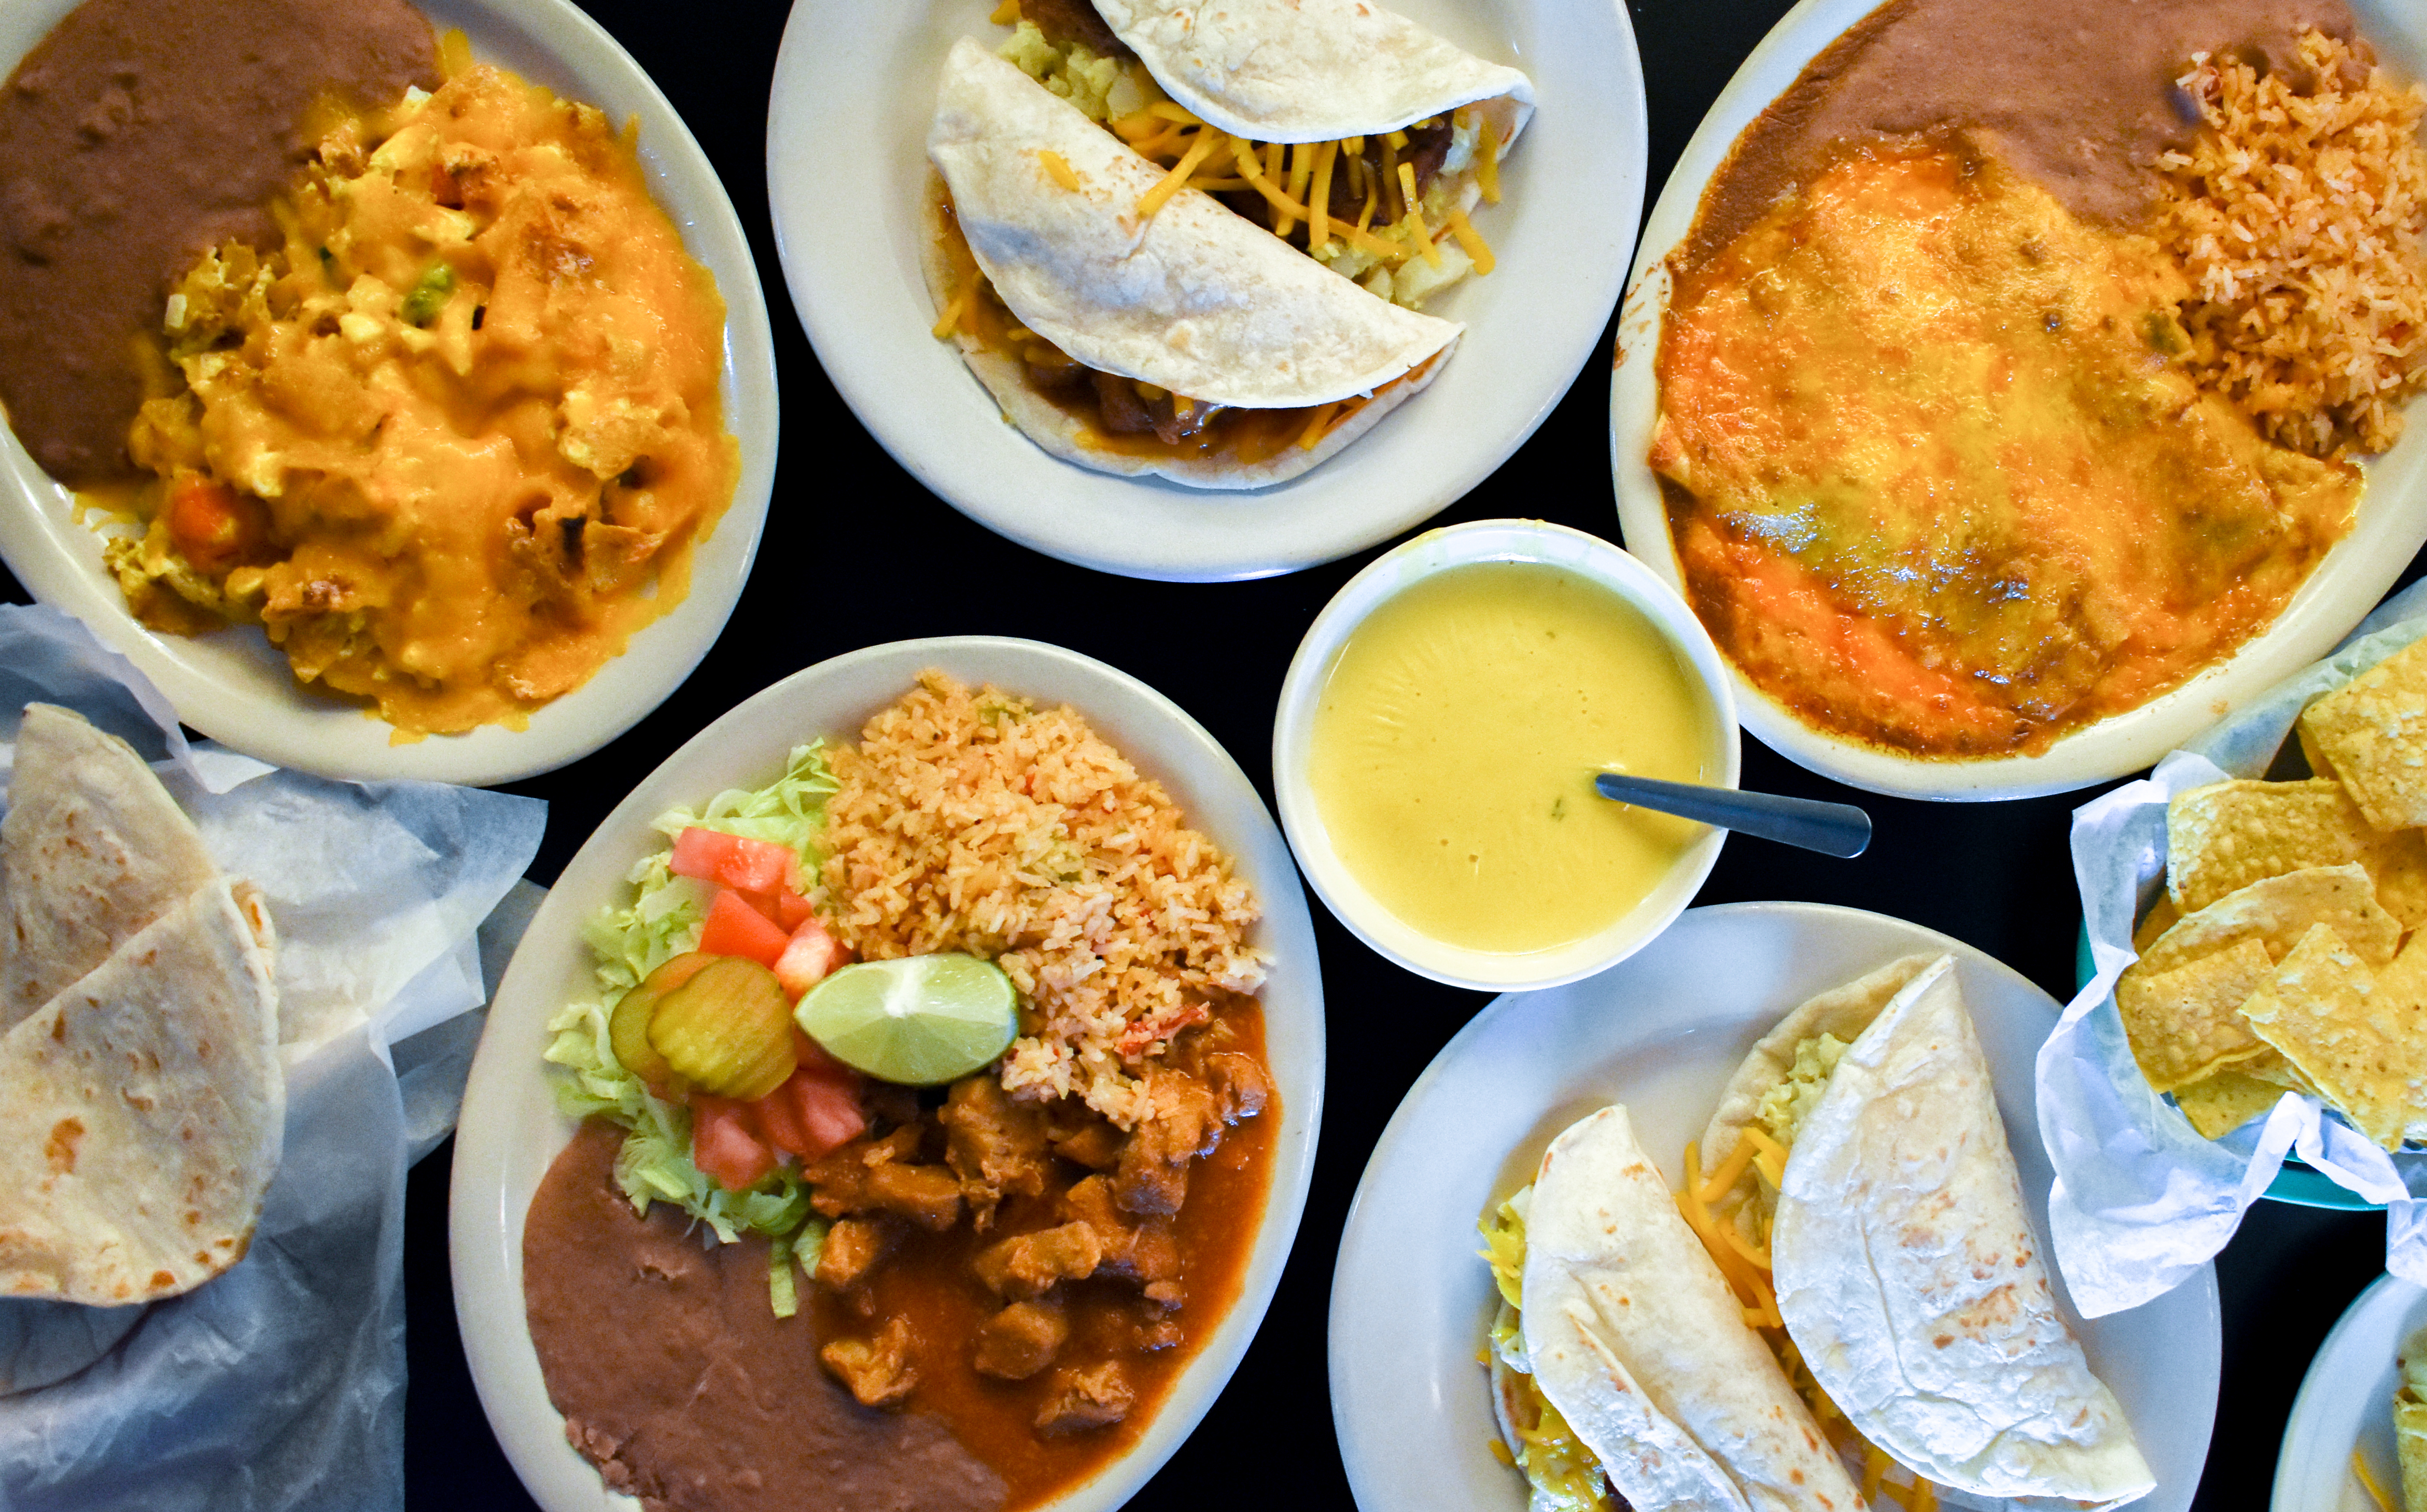 The 17 Tex-Mex Dishes Every Self-Respecting Austinite Should Know